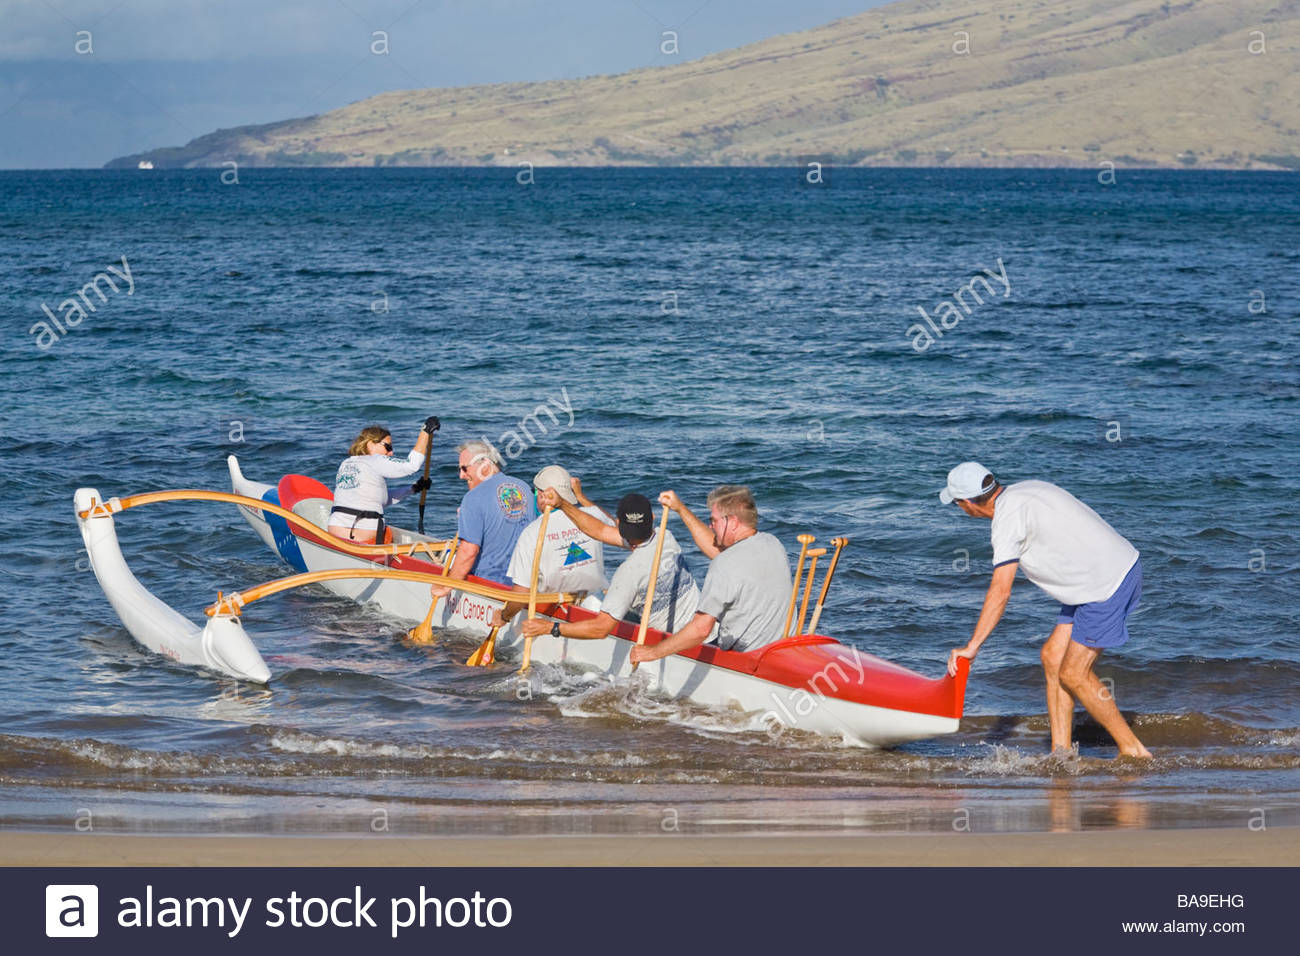 Outrigger canoe paddled by seniors tour group at Kihei on the island of Maui in the state of Hawaii USA - Stock Image